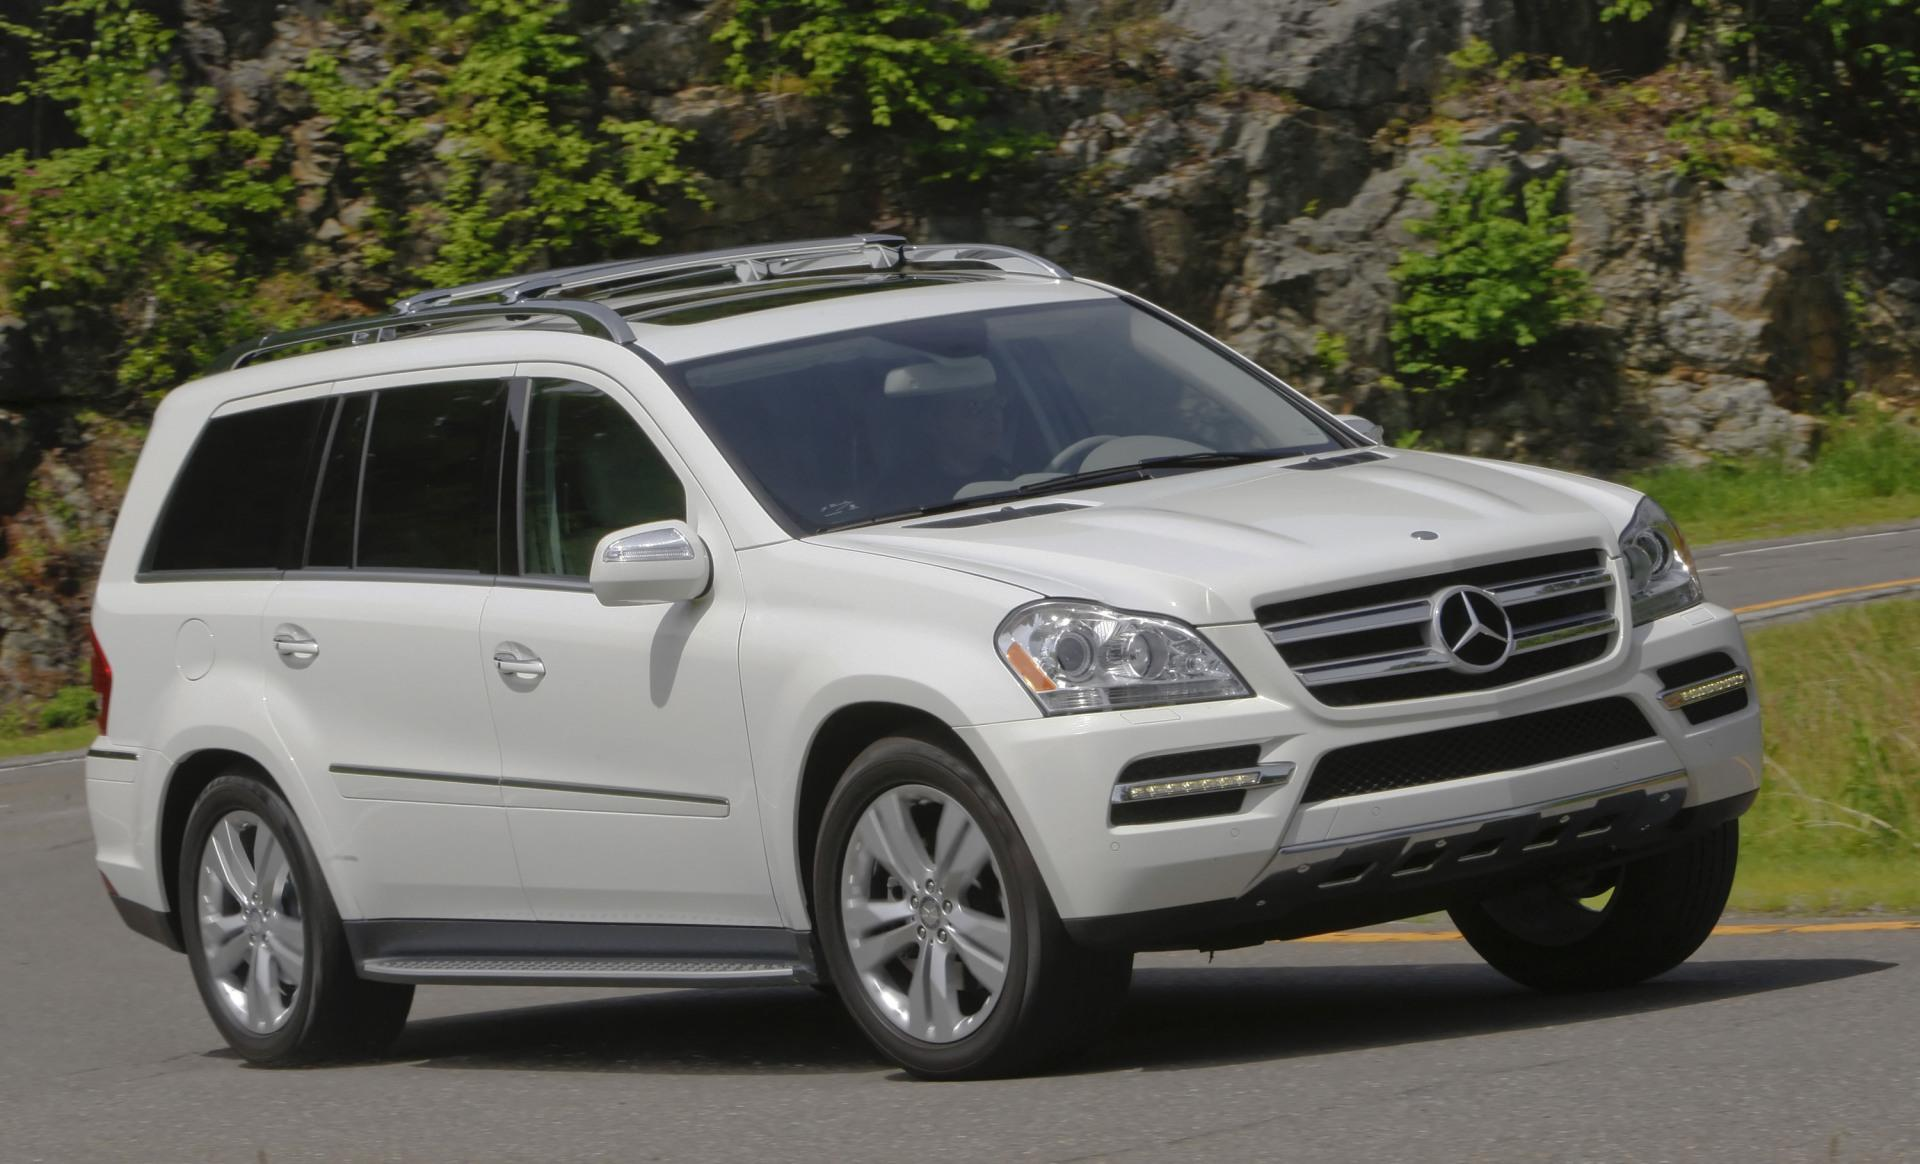 2010 Mercedes Benz Gl Class Image Photo 81 Of 92